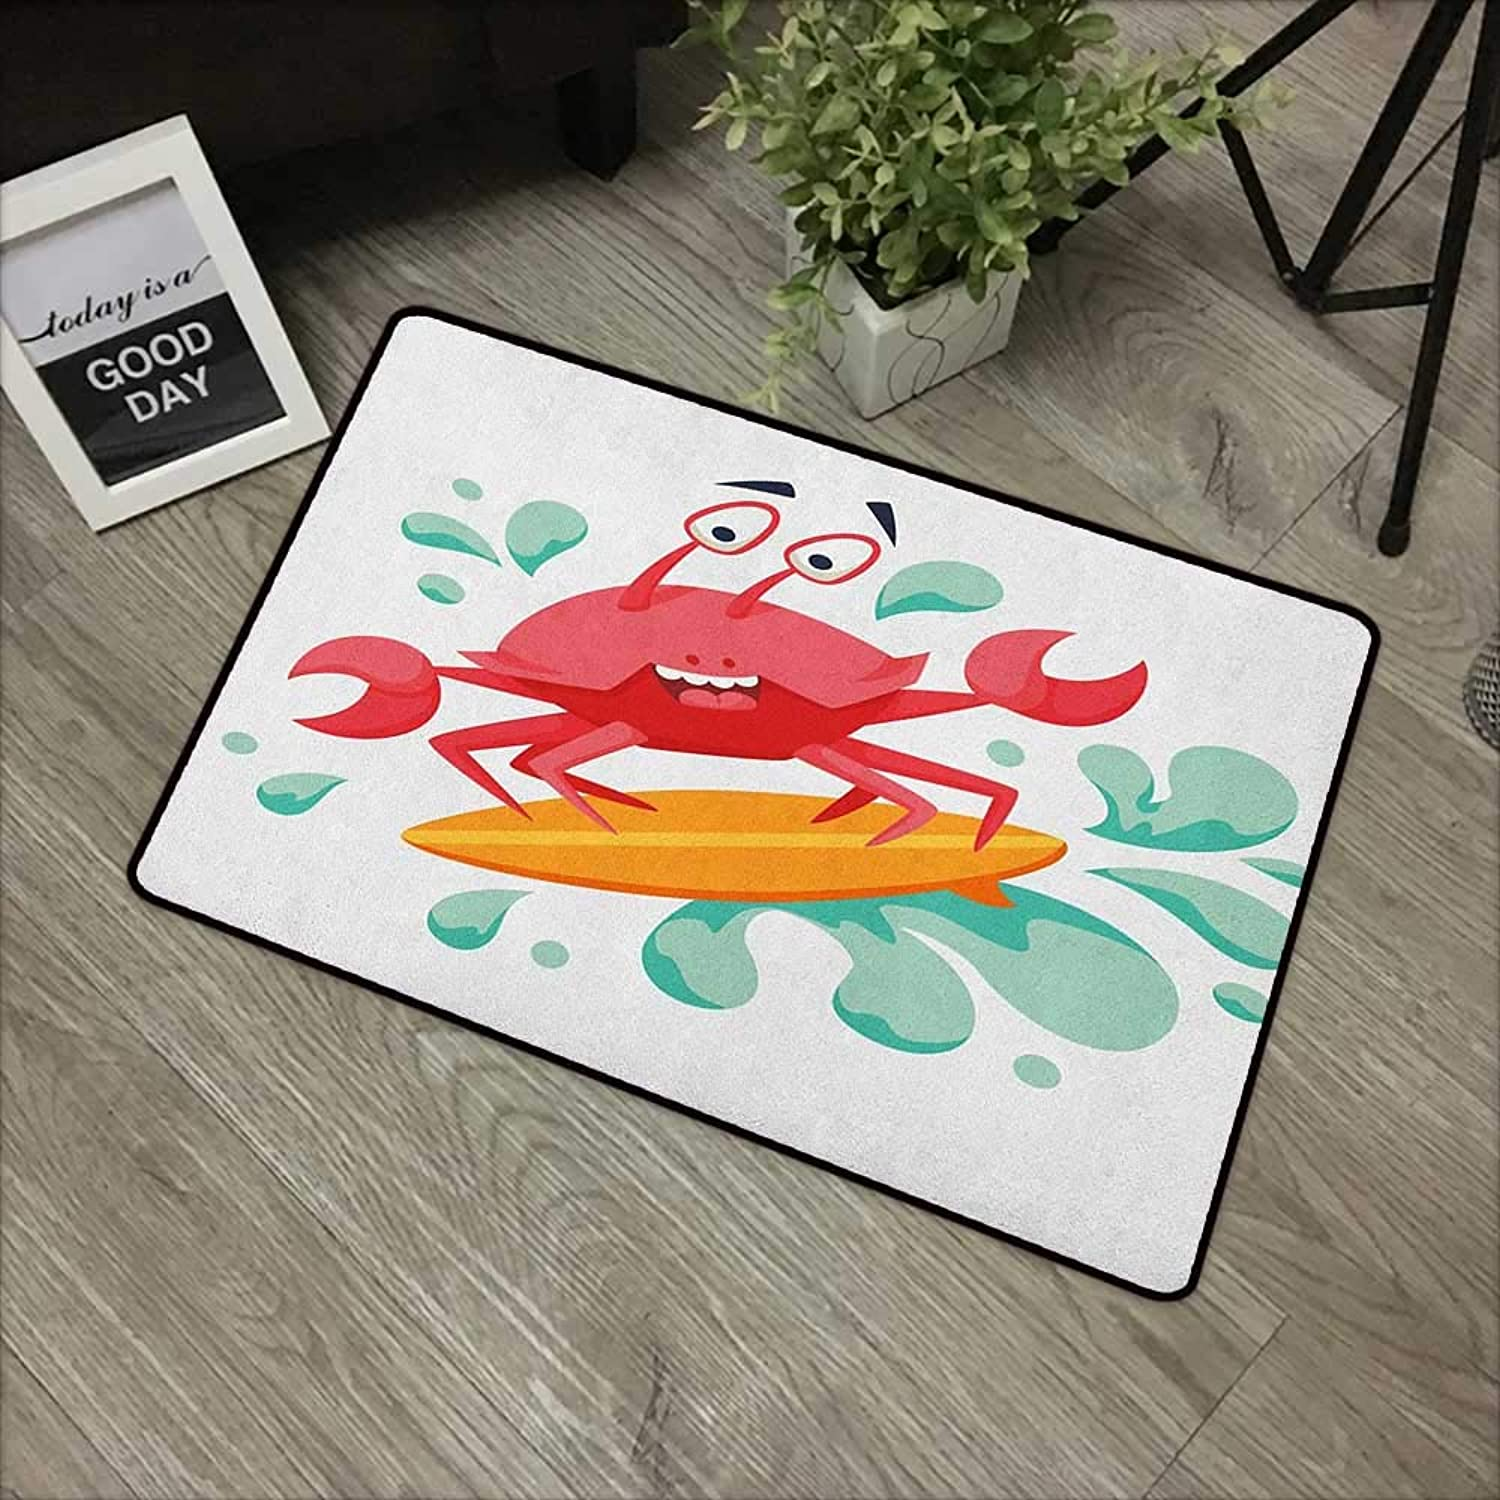 Living room door mat W35 x L59 INCH Ride The Wave,Caricature Crab Surfing in the Sea Sports Adventure Illustration, Dark Coral Mint orange Easy to clean, no deformation, no fading Non-slip Door Mat Ca